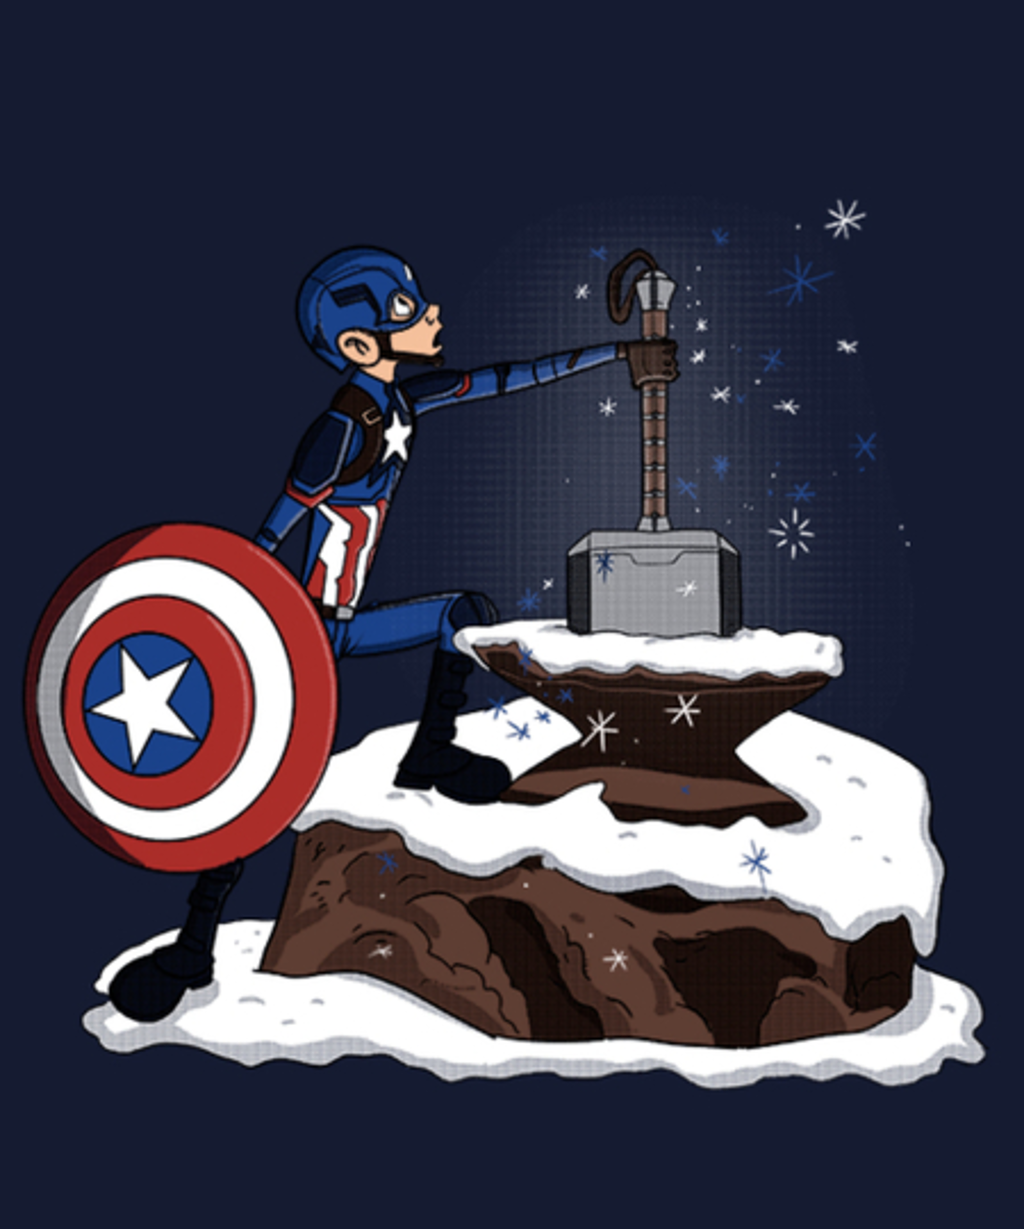 Qwertee: the hammer in the stone